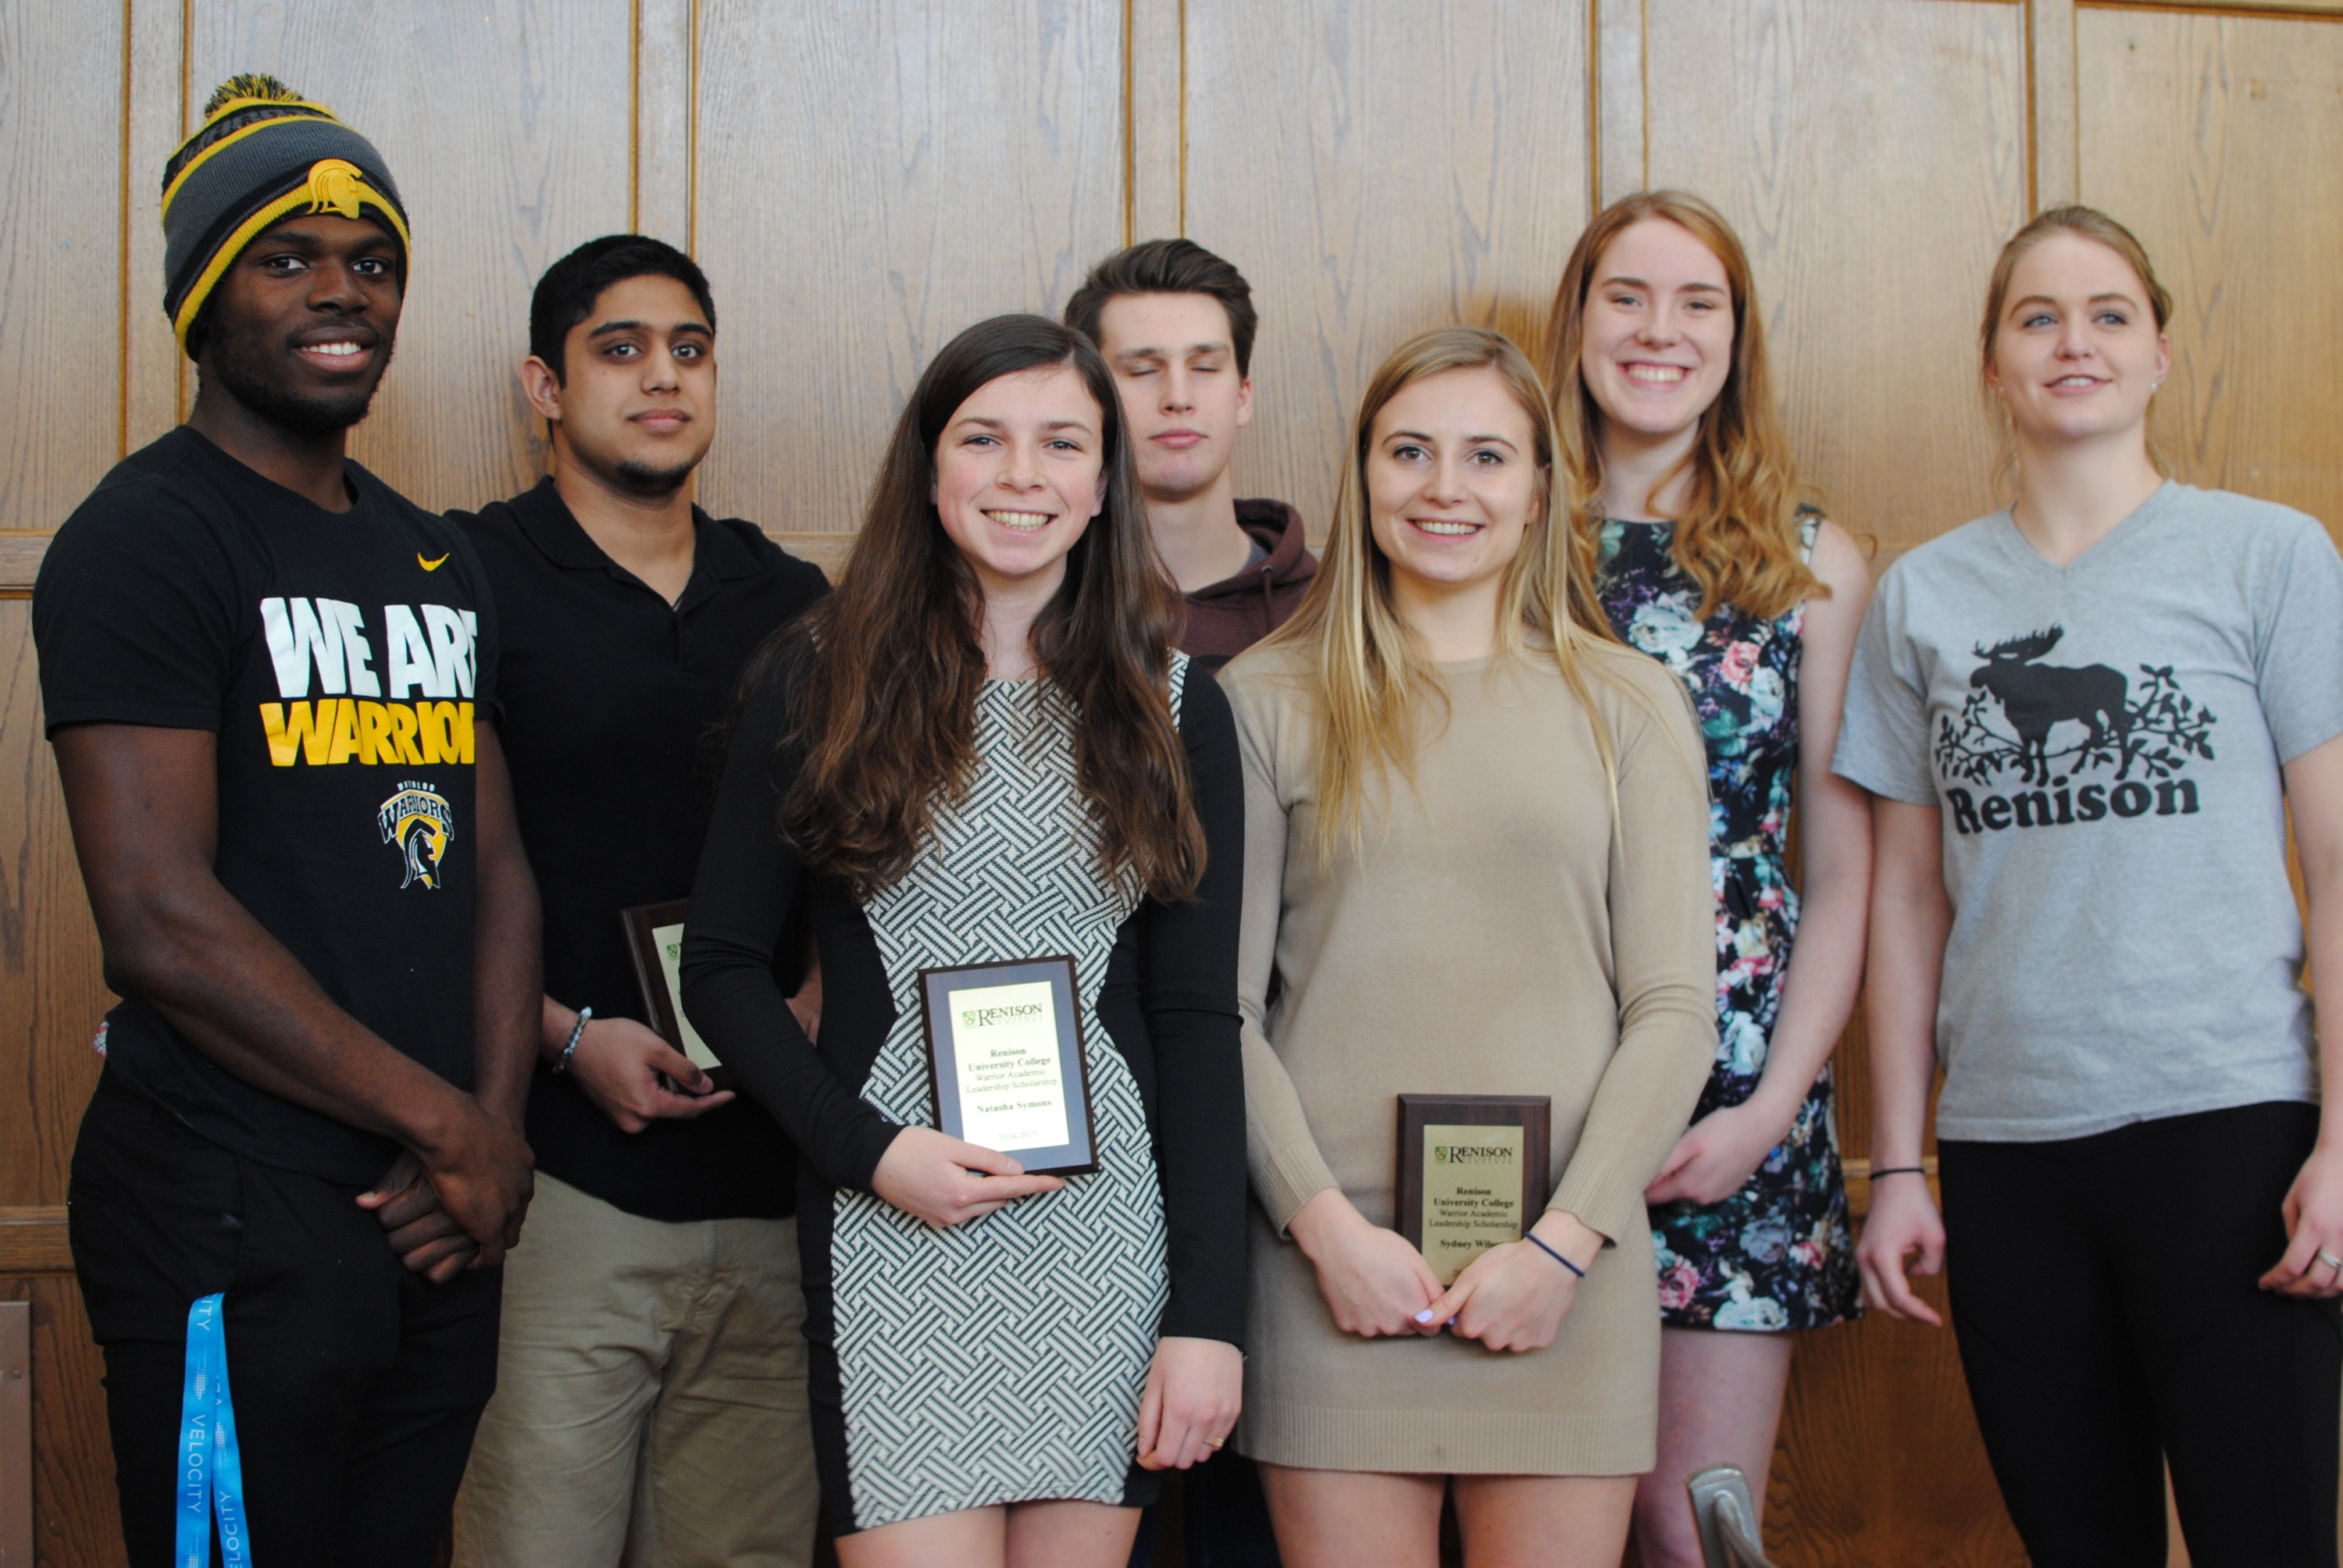 Renison WALC leaders give out awards